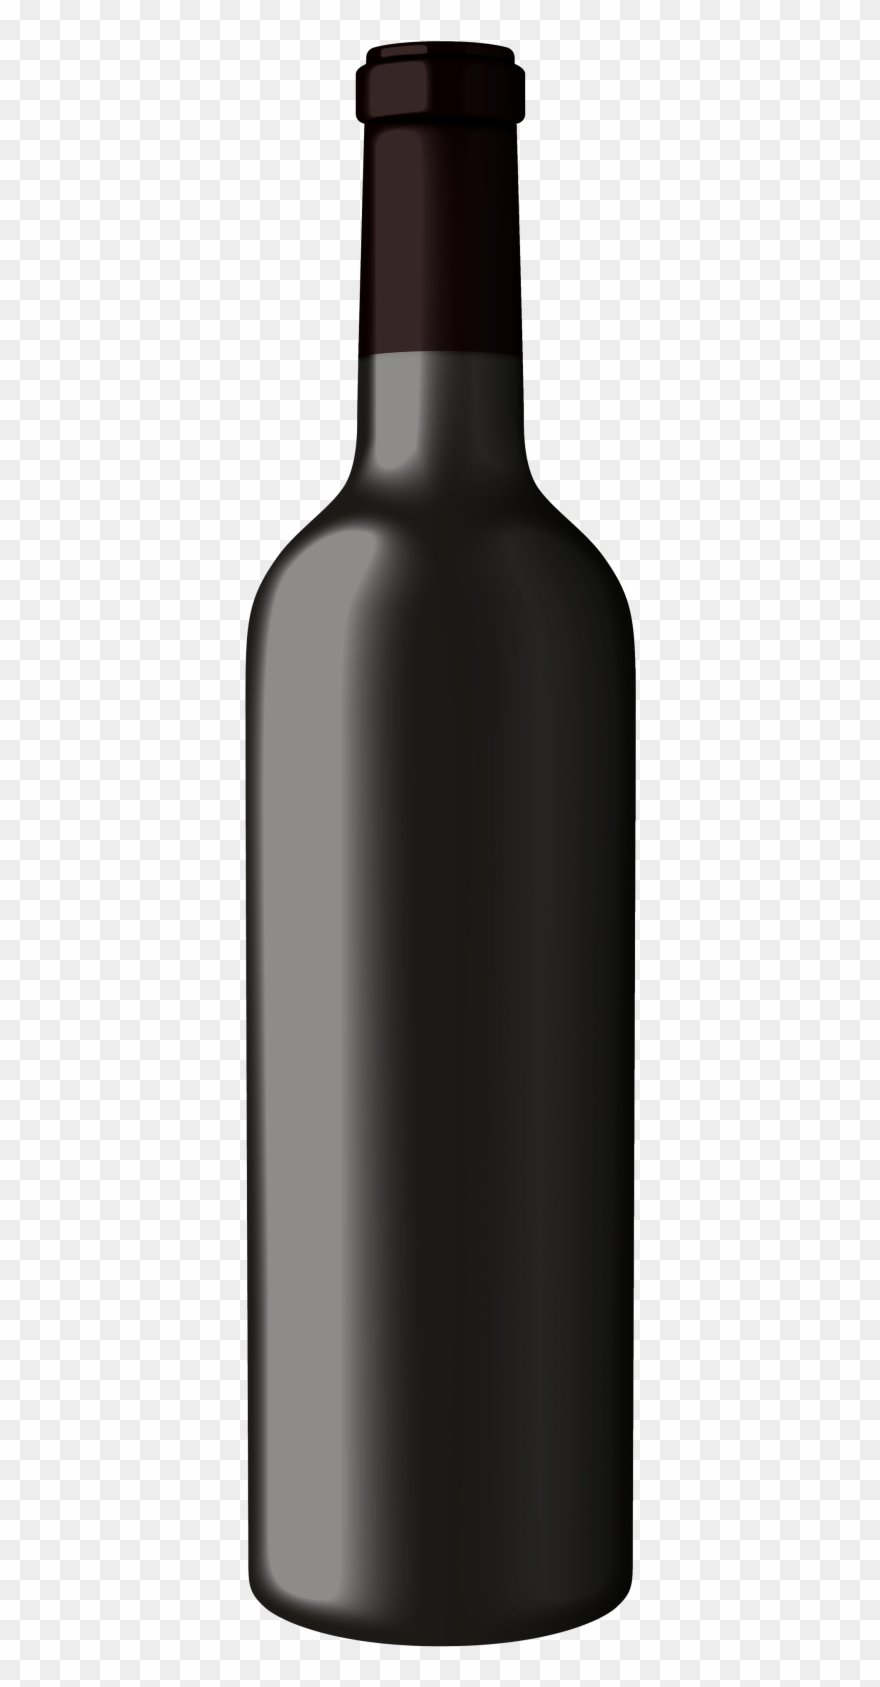 Wine bottle clipart black image free library Enter Online Store - Black Wine Bottle Clipart - Png ... image free library